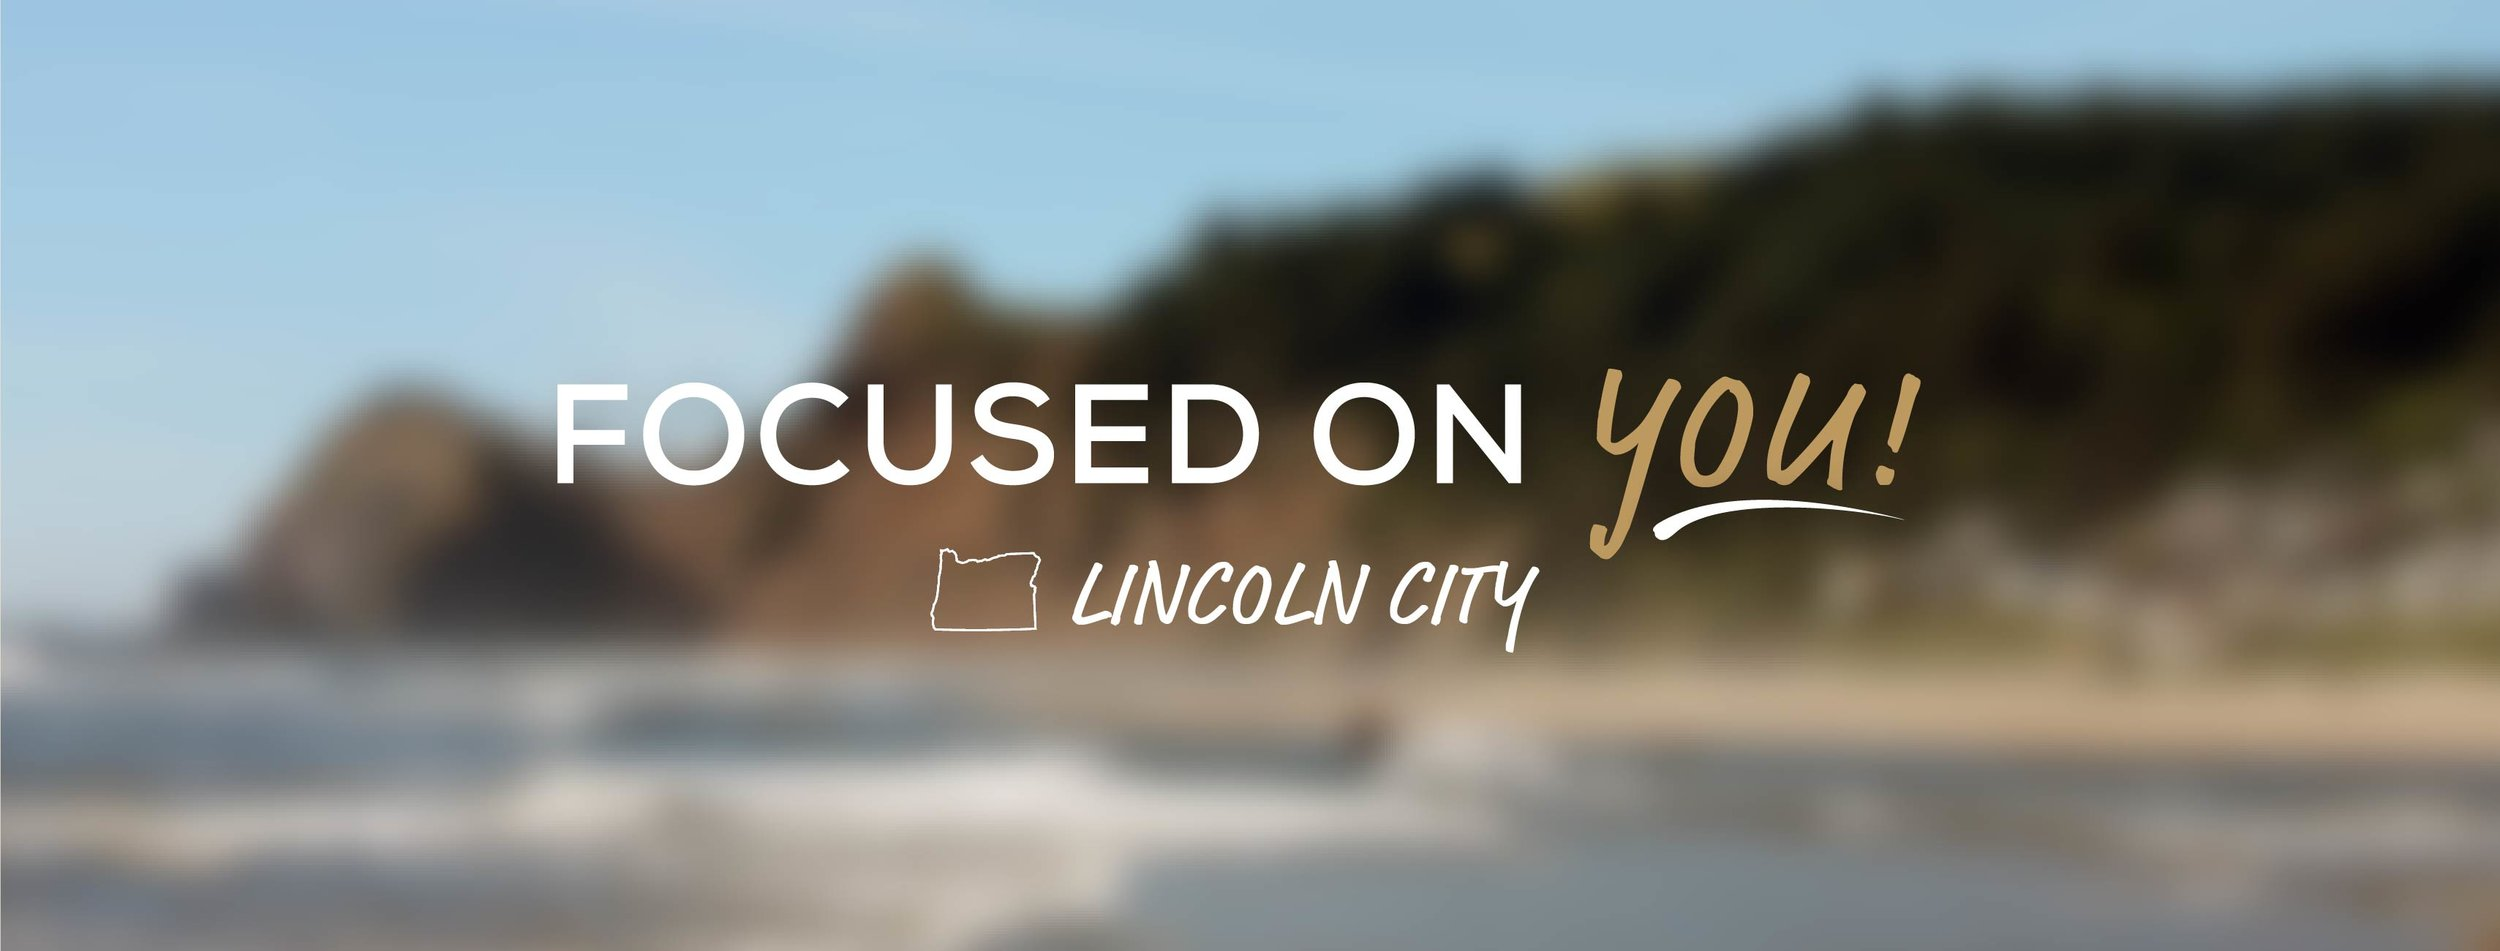 Lincoln City - 541.994.6003lincolncity@directorsmortgage.net2137-B NW Hwy 101Lincoln City, OR 97367